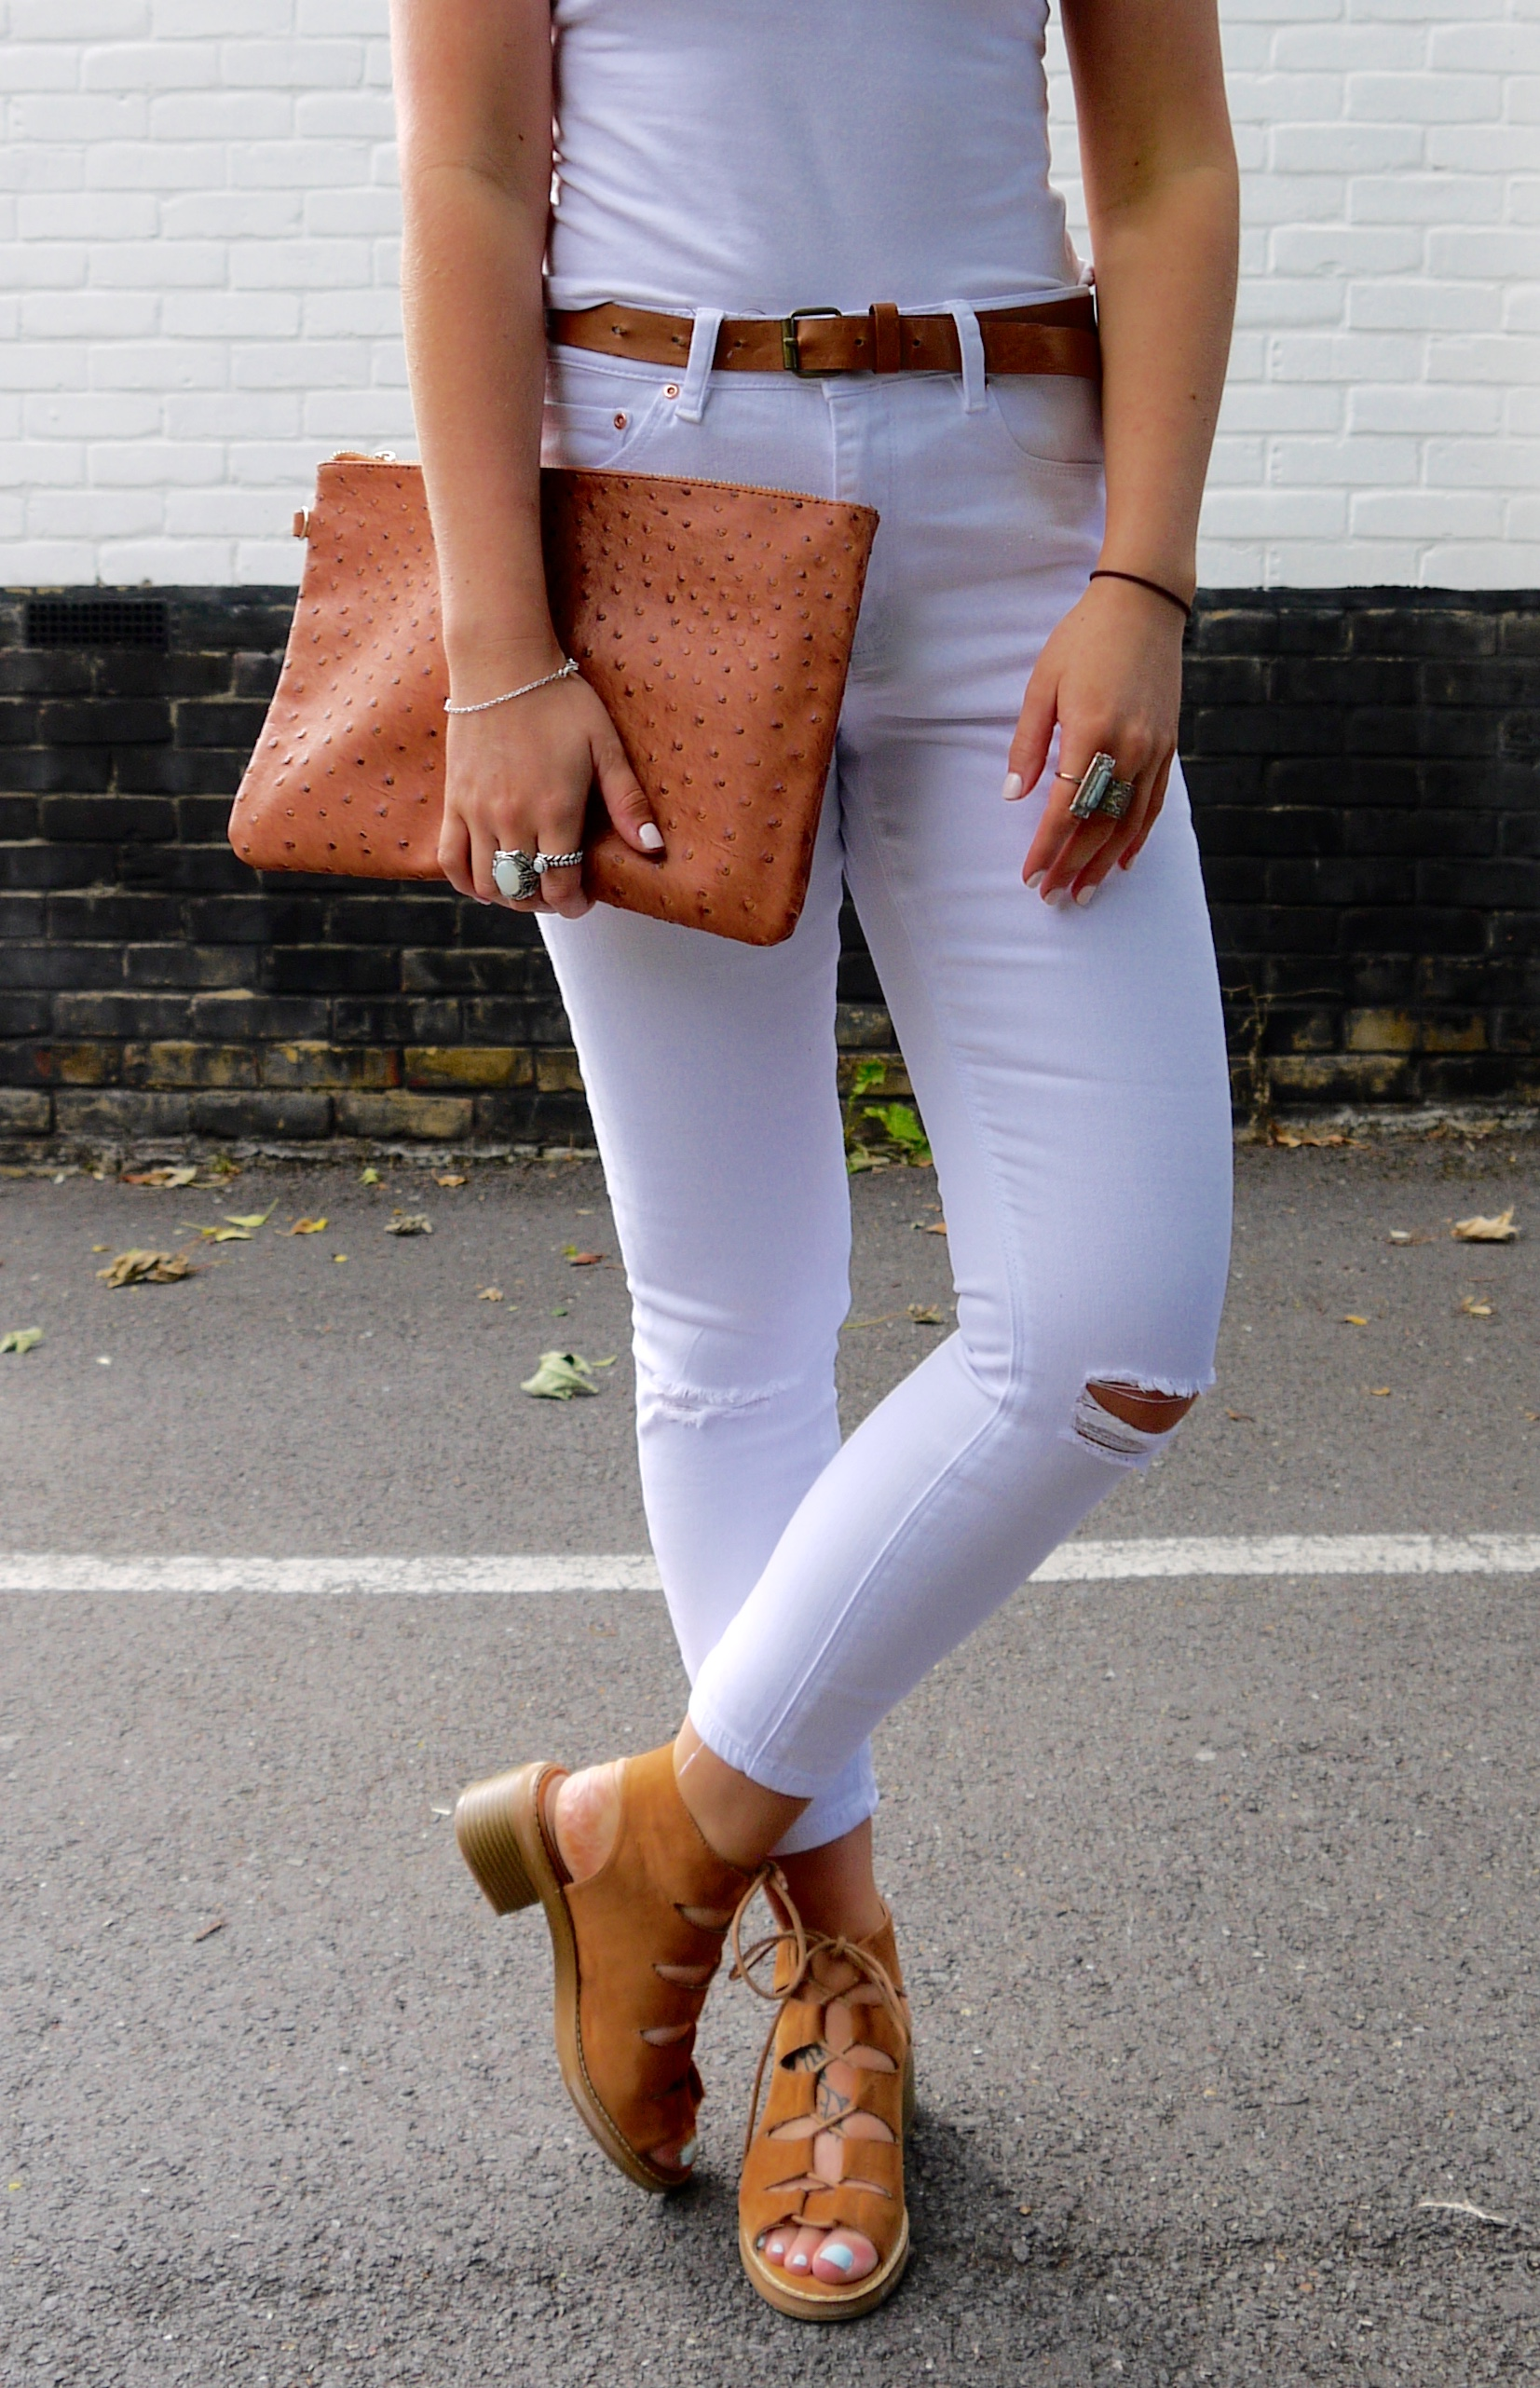 asos ridley jeans, white ripped jeans, tan accessories, tan lace up sandals